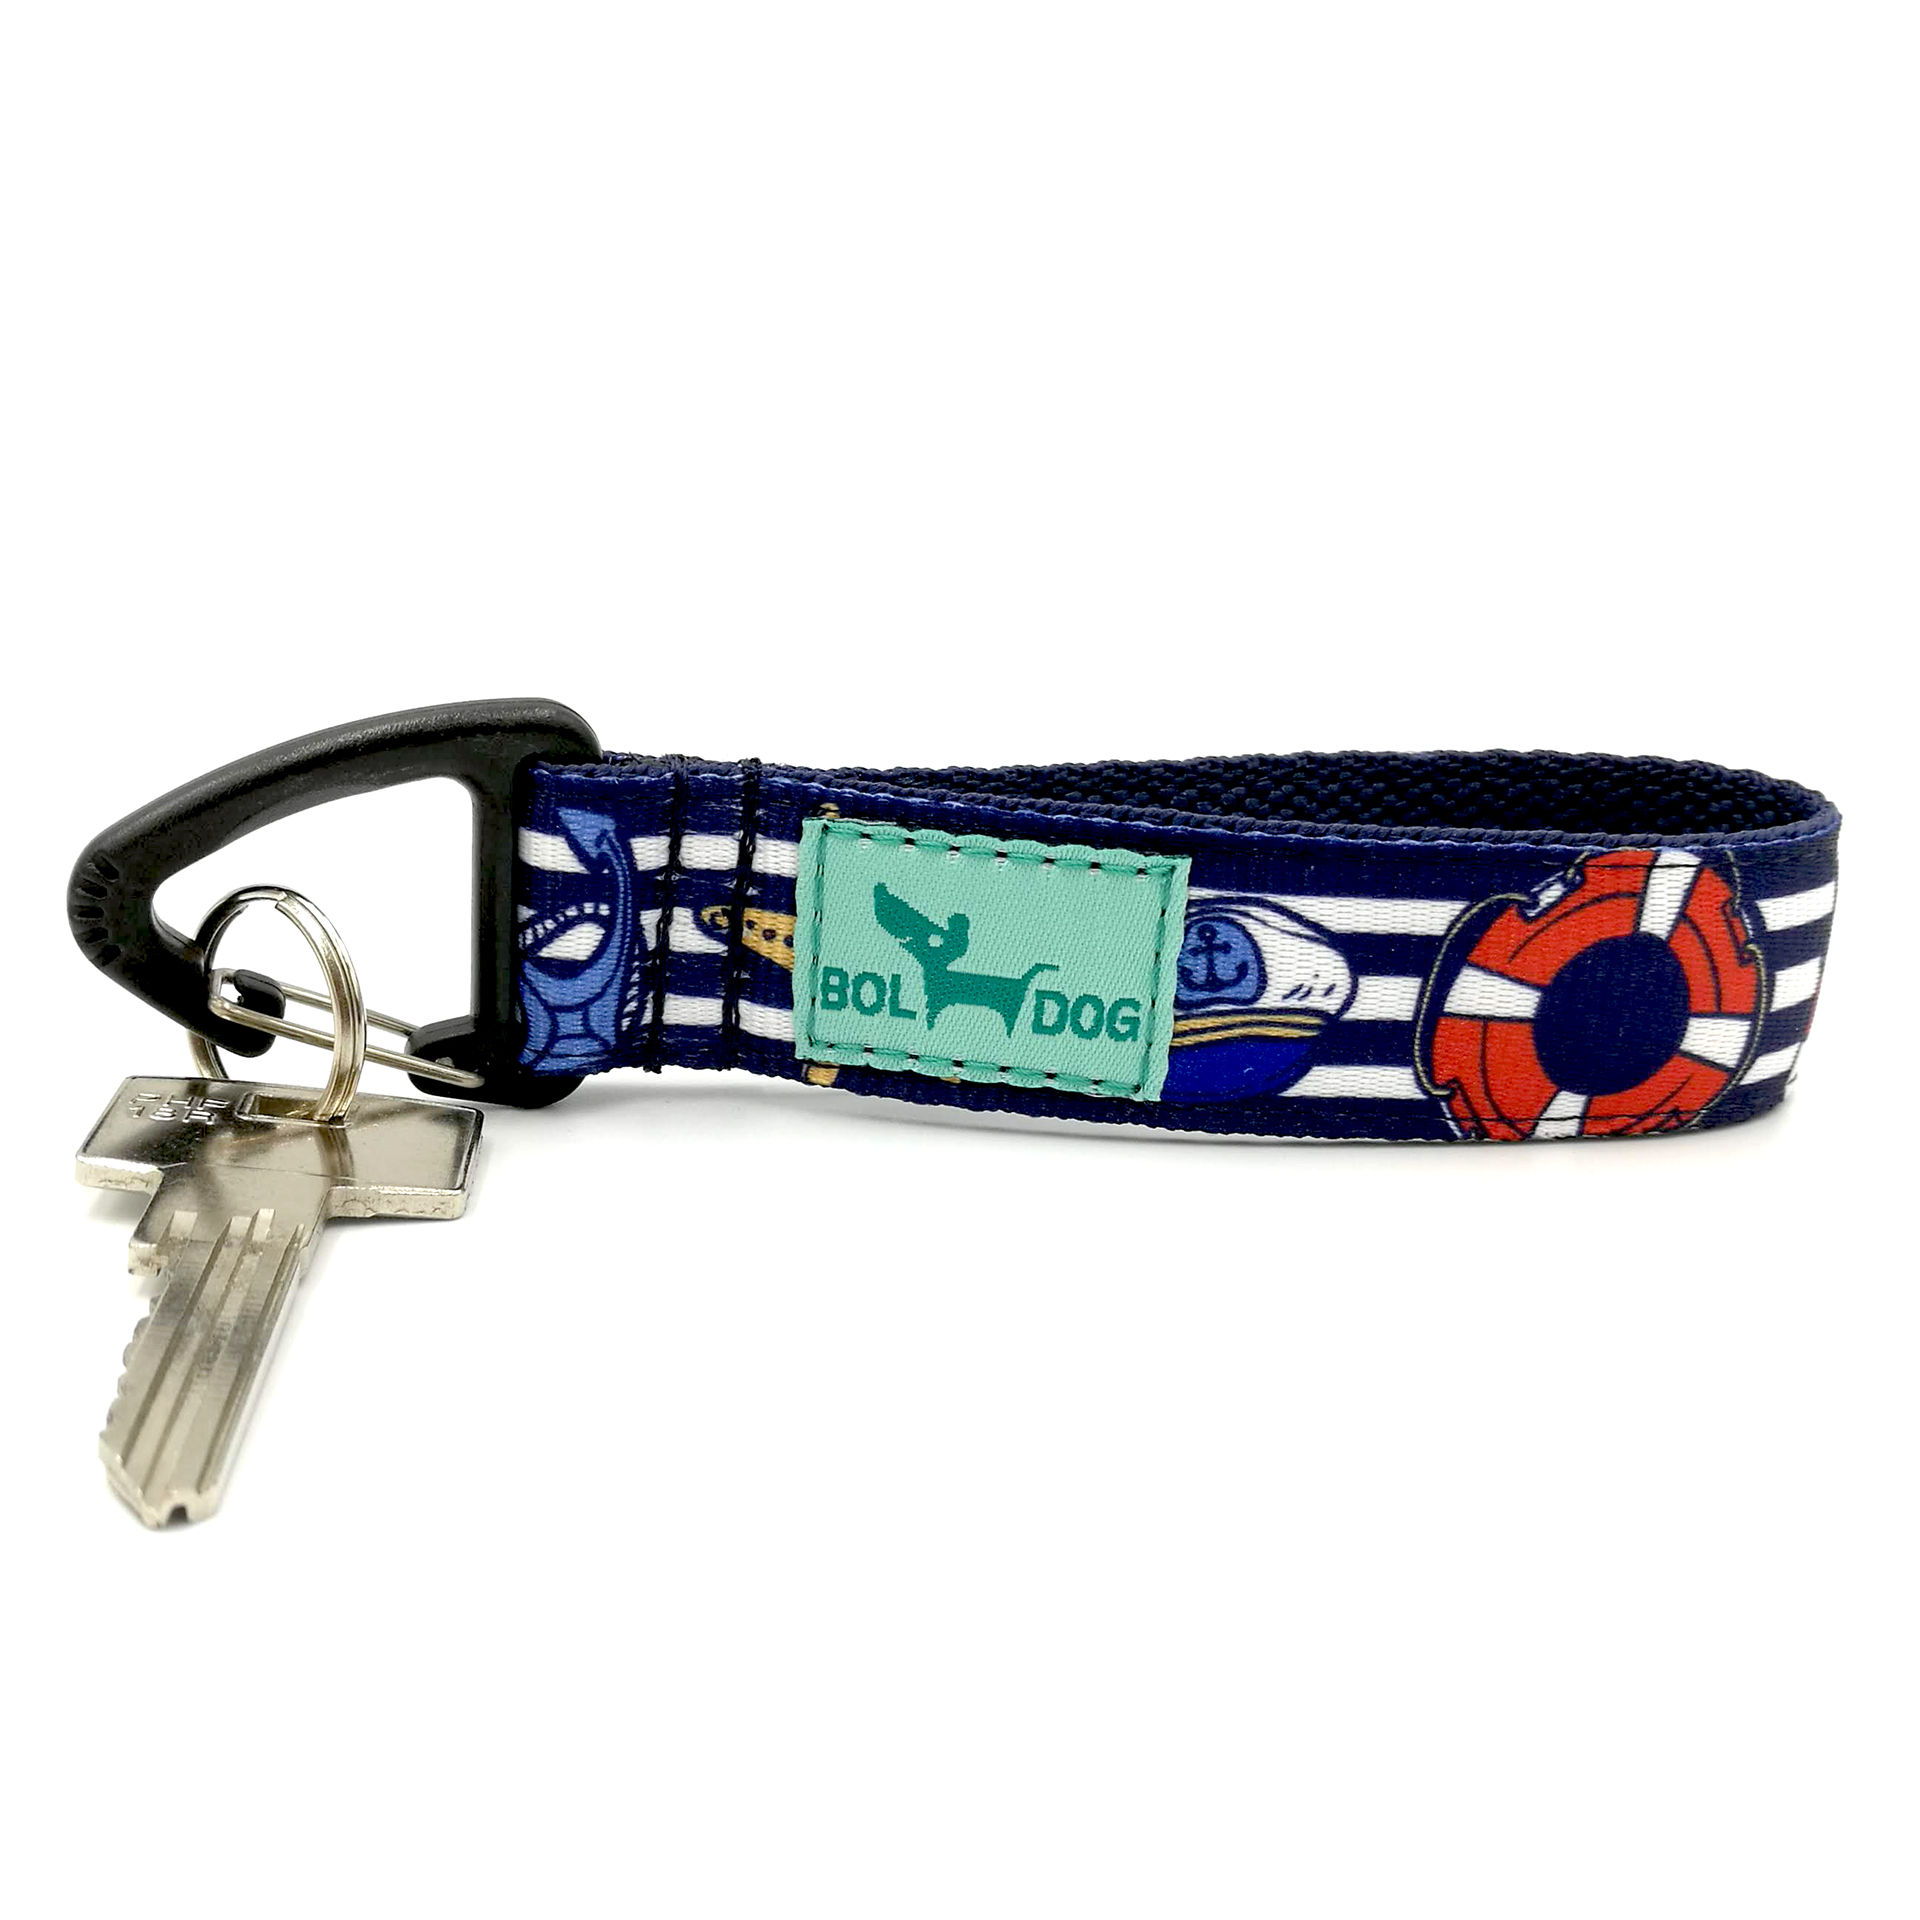 Marine blue key holder